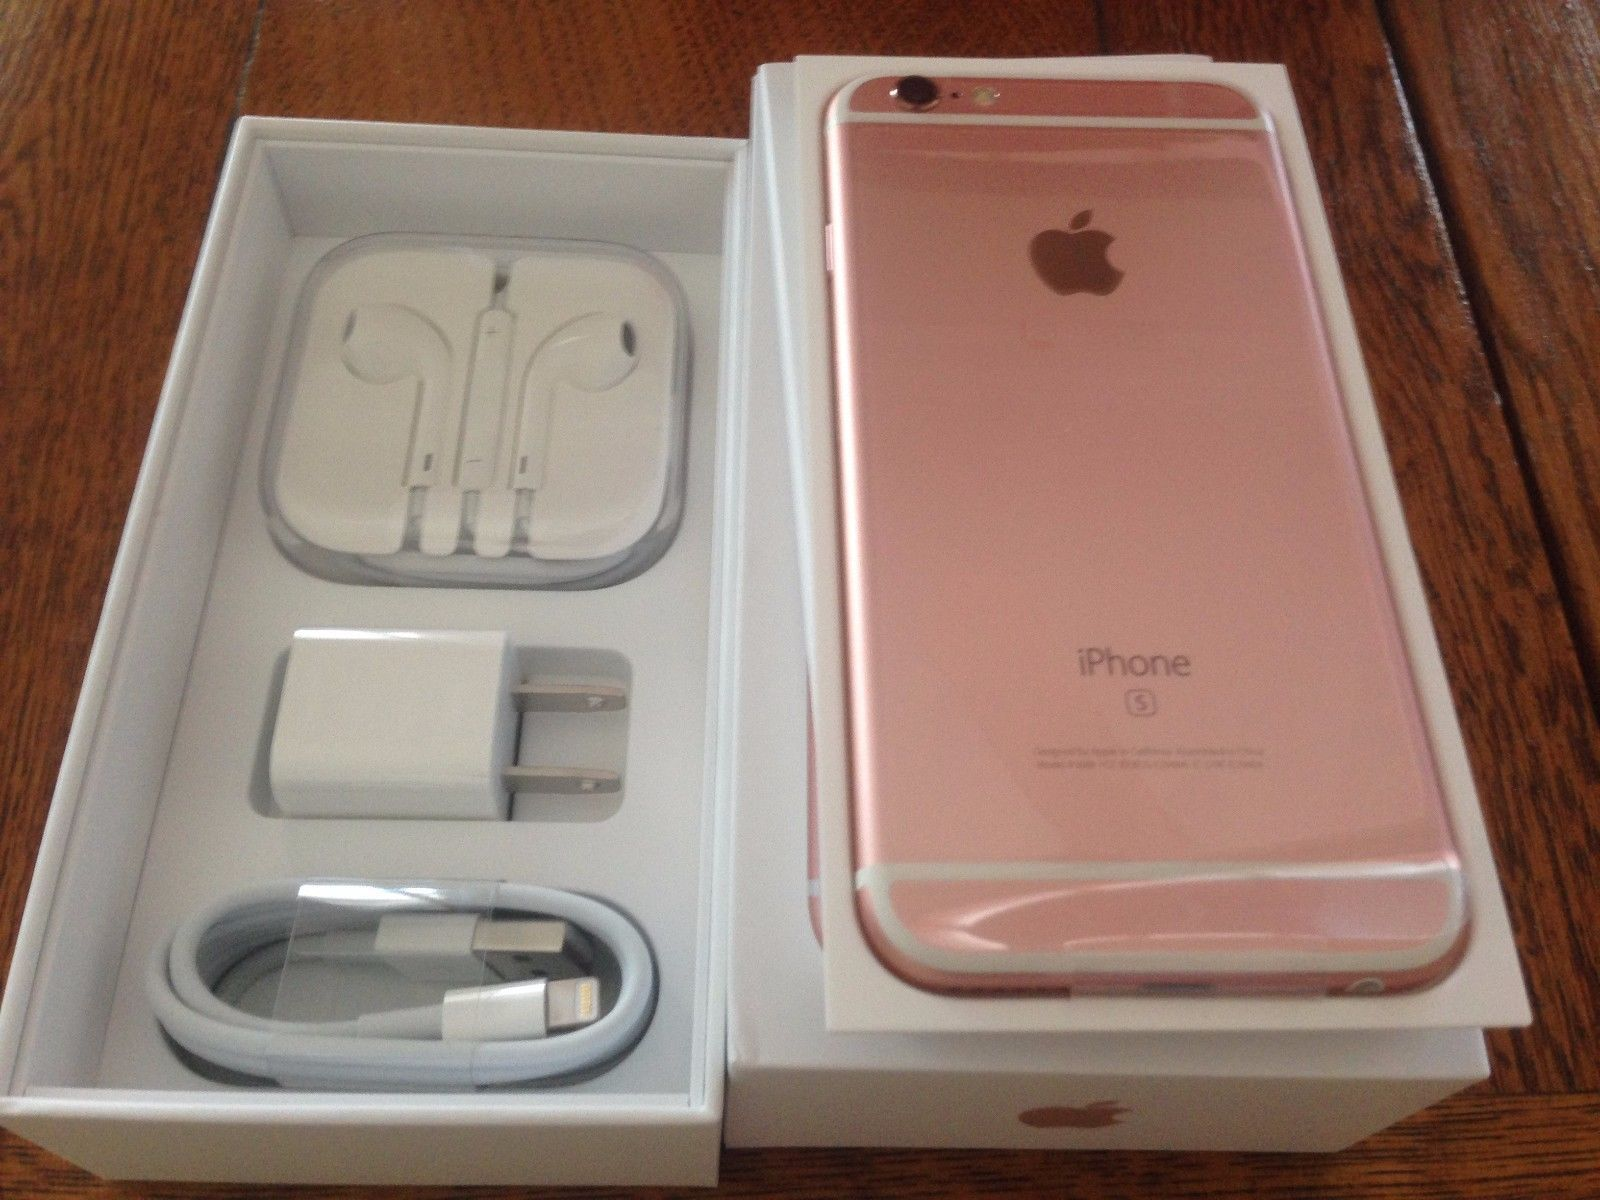 New Space Gray Or Rose Gold Iphone 6s 64gb Or 128 Gb Forever Factory Unlocked On New Software V 9 For All Sim Cards Wor Iphones Iphone Accesorios Para Celular